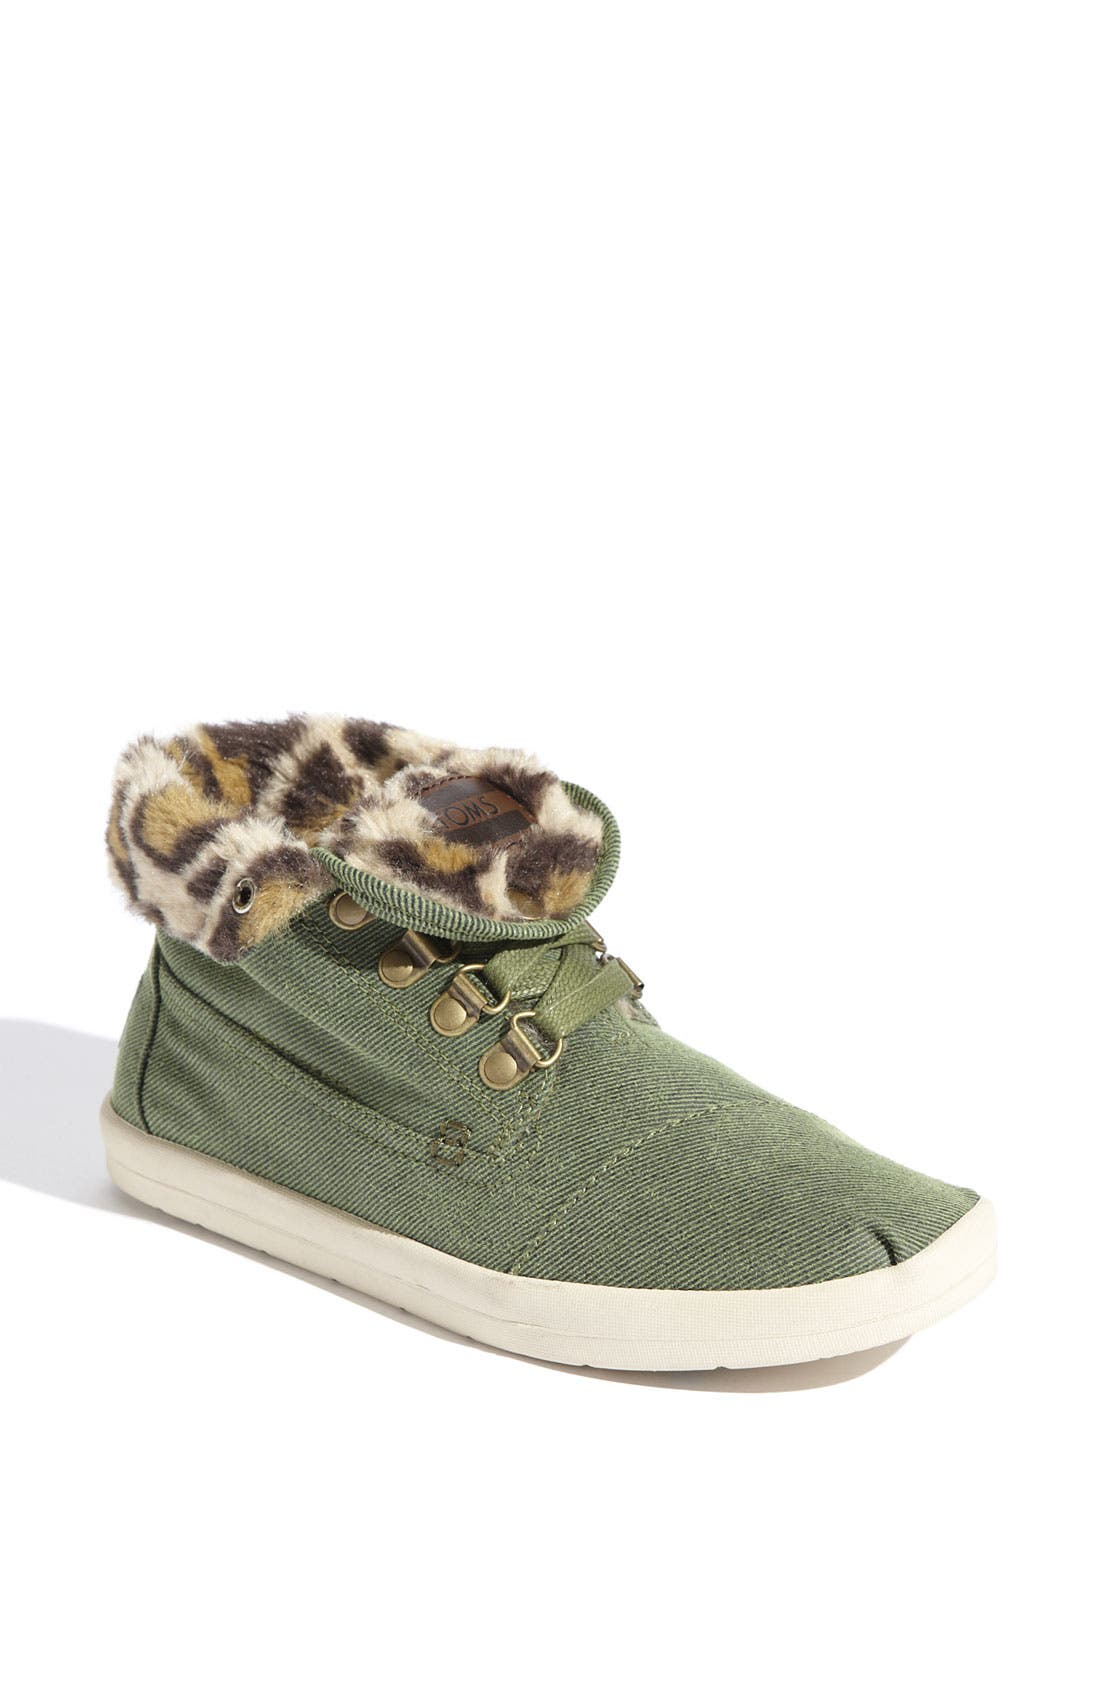 Alternate Image 1 Selected - TOMS 'Botas - Highlands' Fleece Chukka Boot (Women)